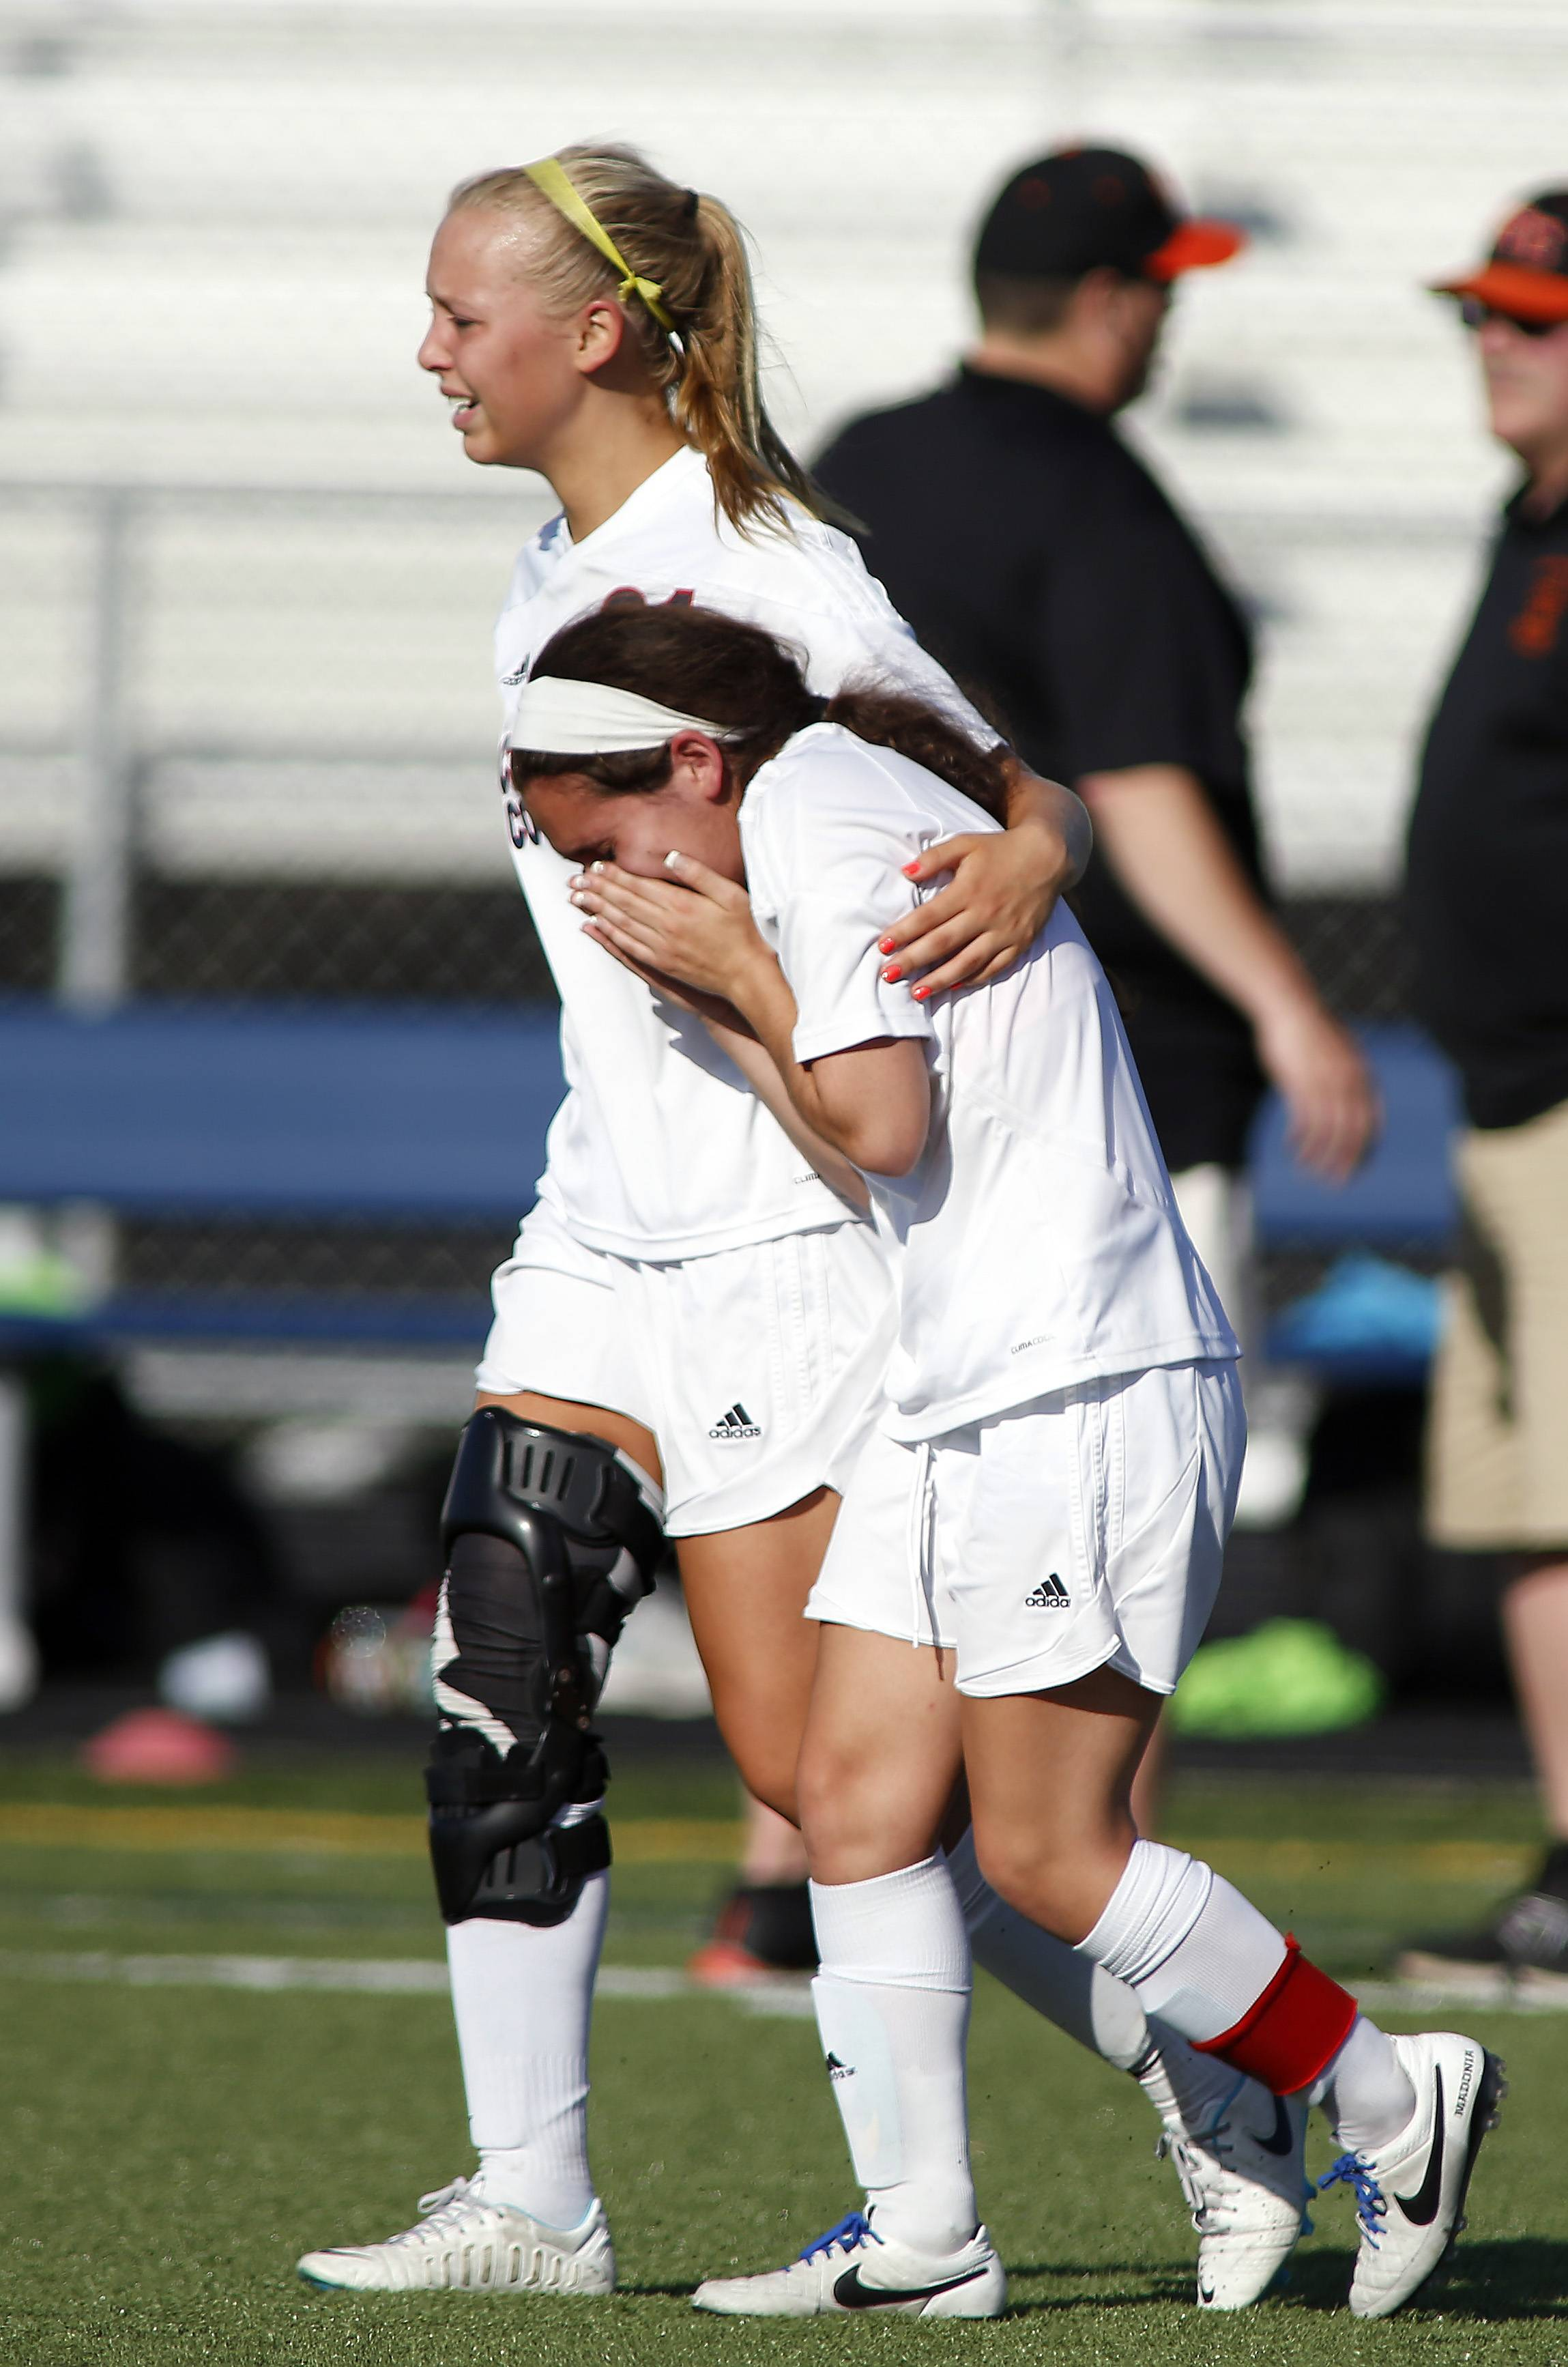 Conant's Katie Lomas (21) consoles teammate Bianca Madonia after the Cougars' loss to St. Charles East on Friday at Conant.